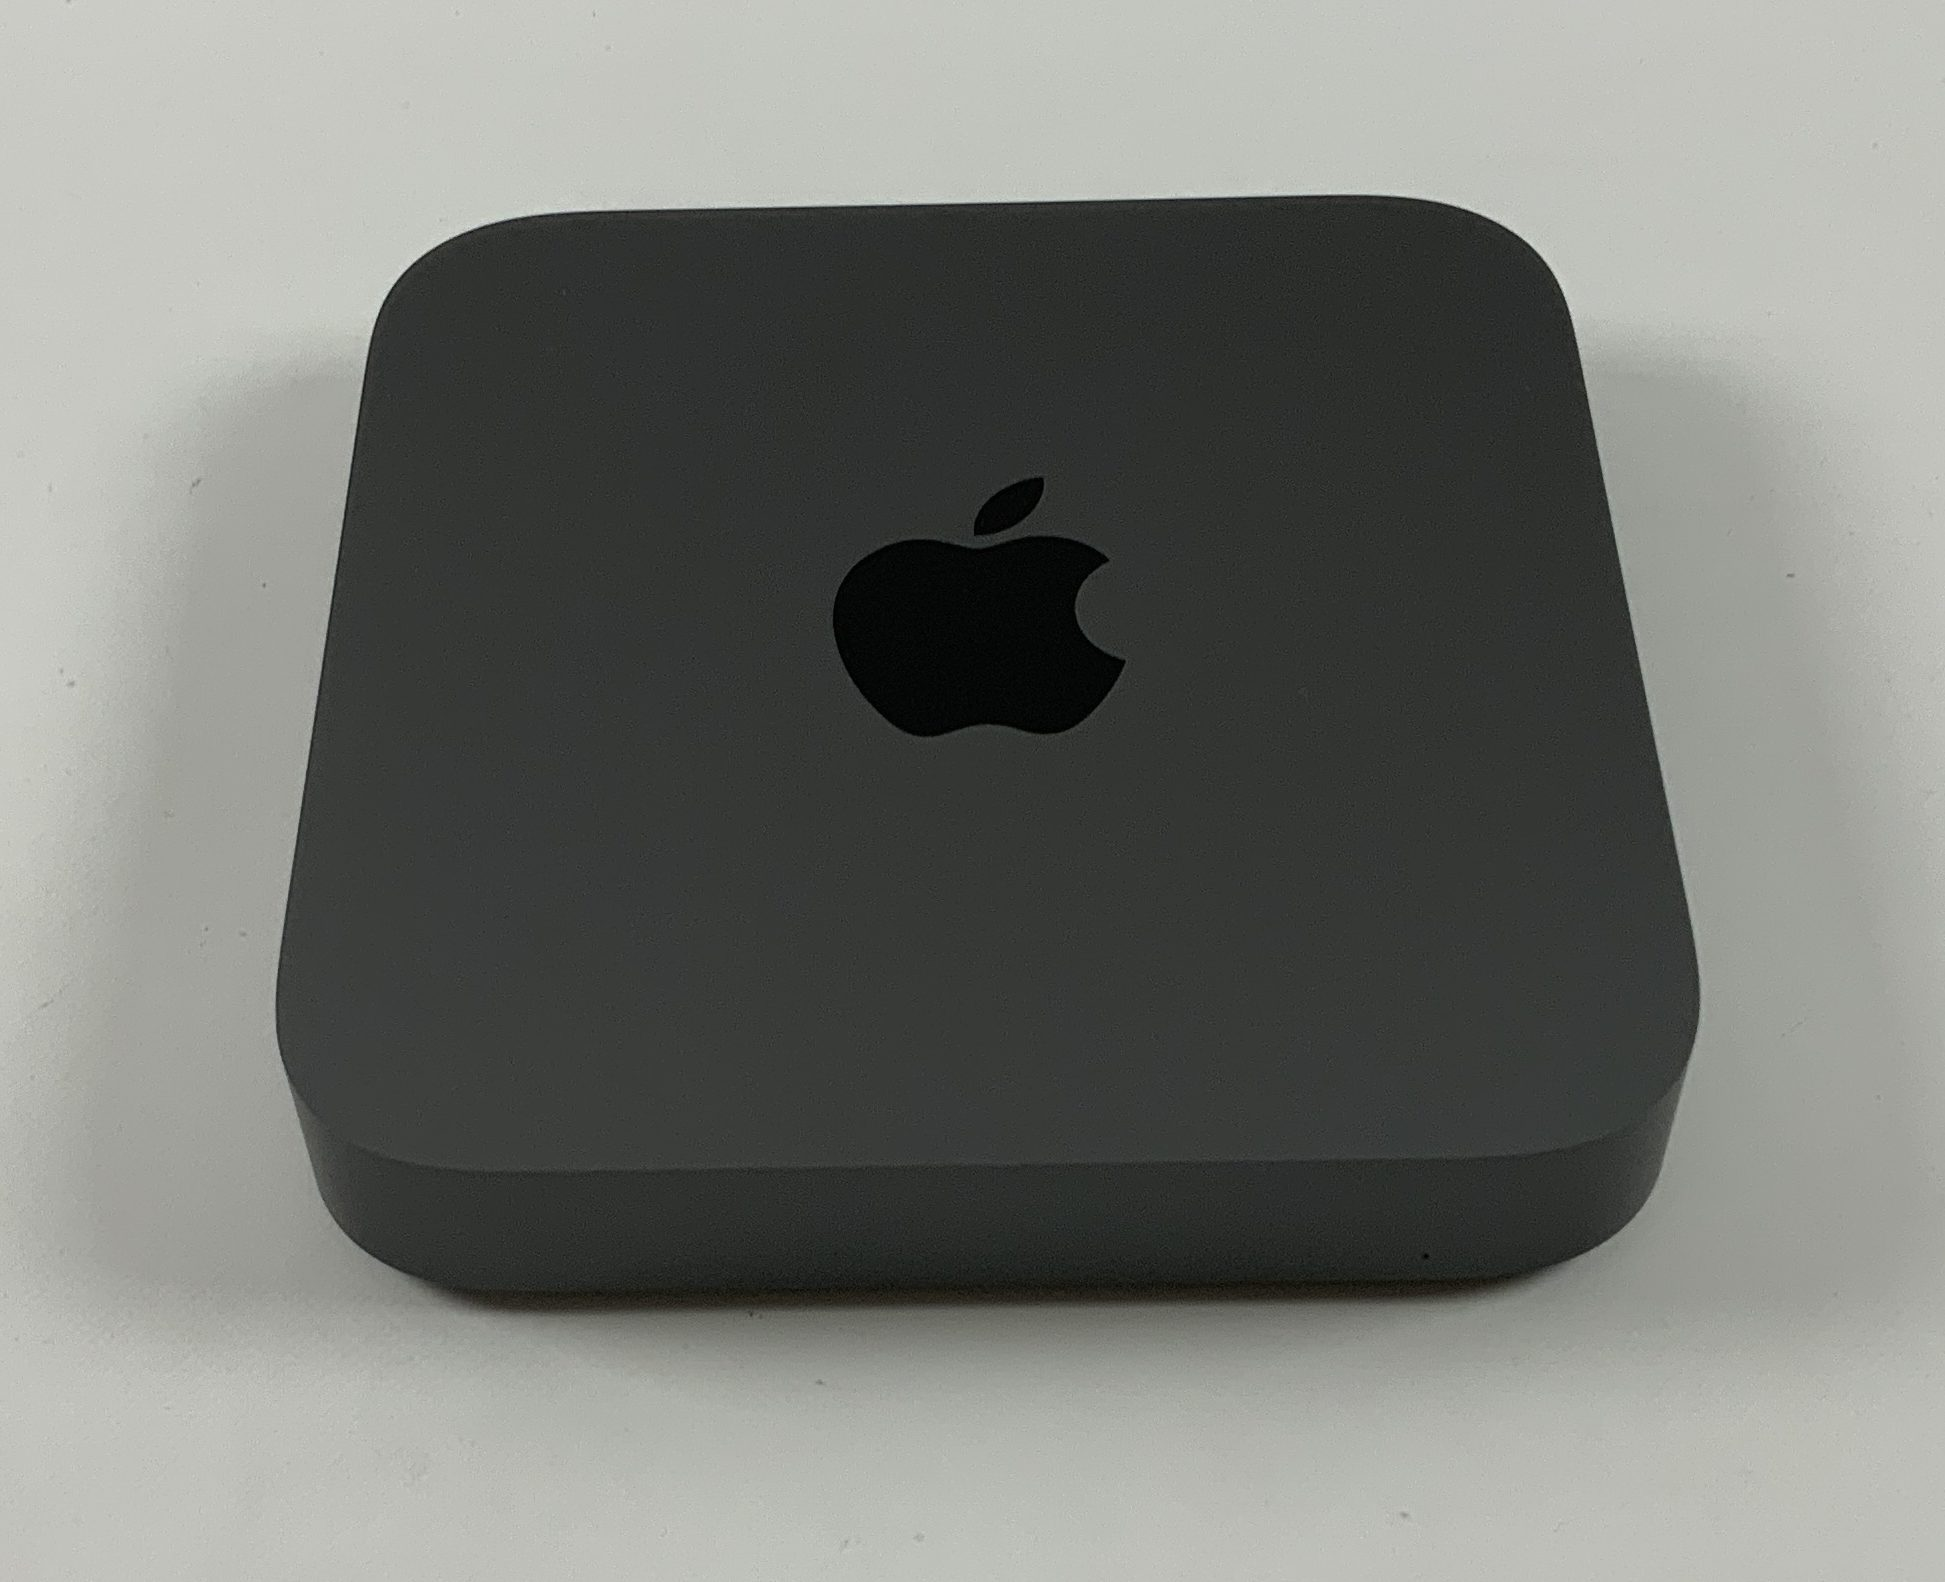 Mac Mini Late 2018 (Intel Quad-Core i3 3.6 GHz 8 GB RAM 256 GB SSD), Intel Quad-Core i3 3.6 GHz, 8 GB RAM, 256 GB SSD, imagen 1